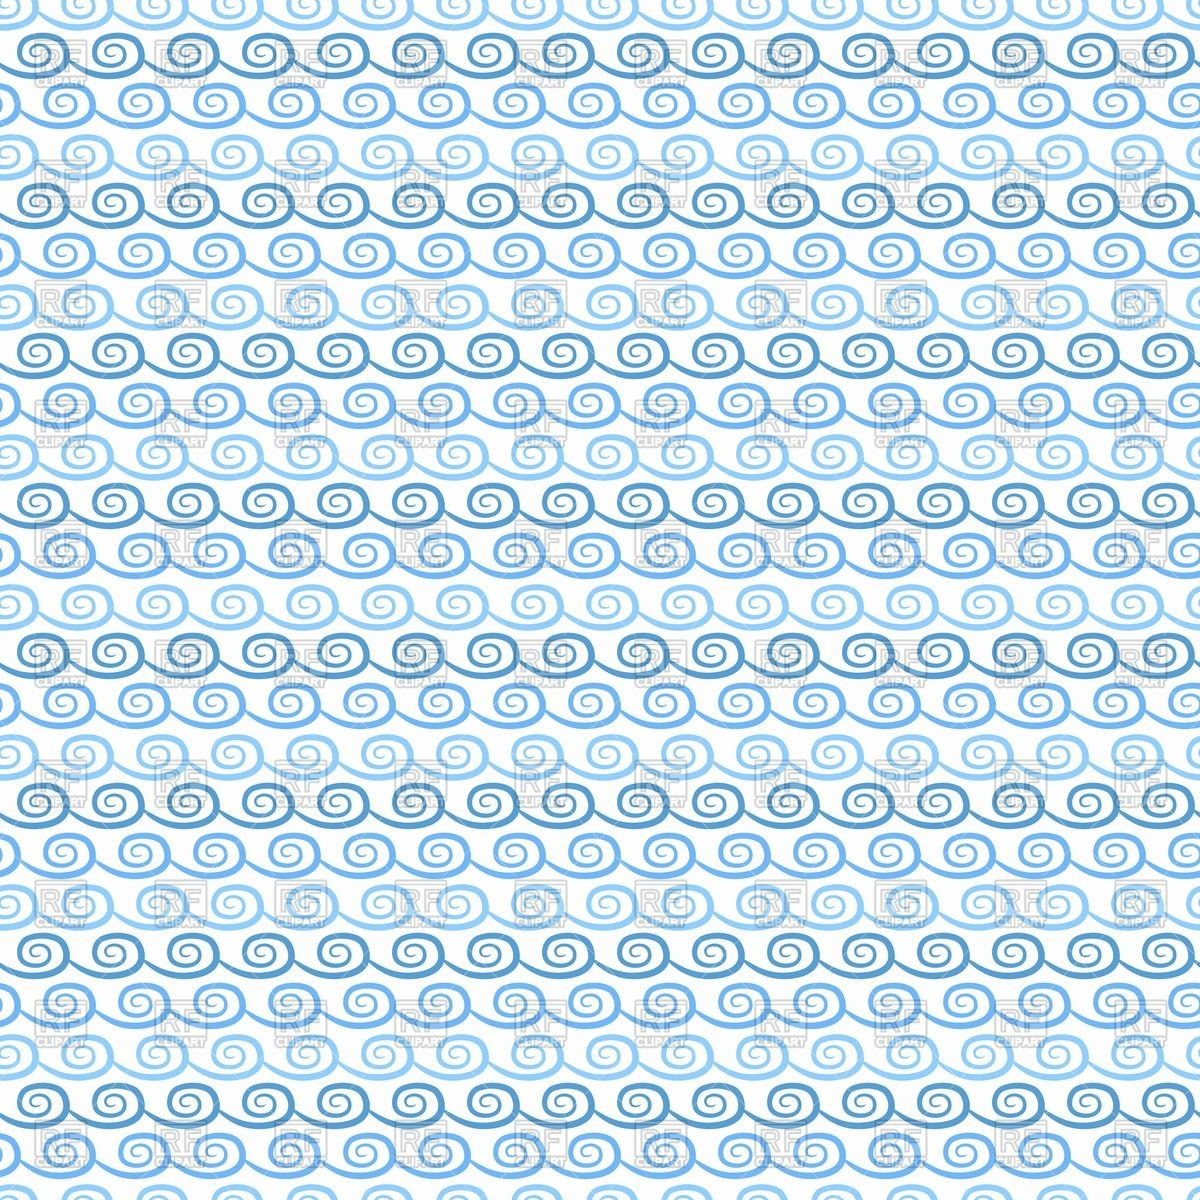 Wallpaper with symbolic waves.